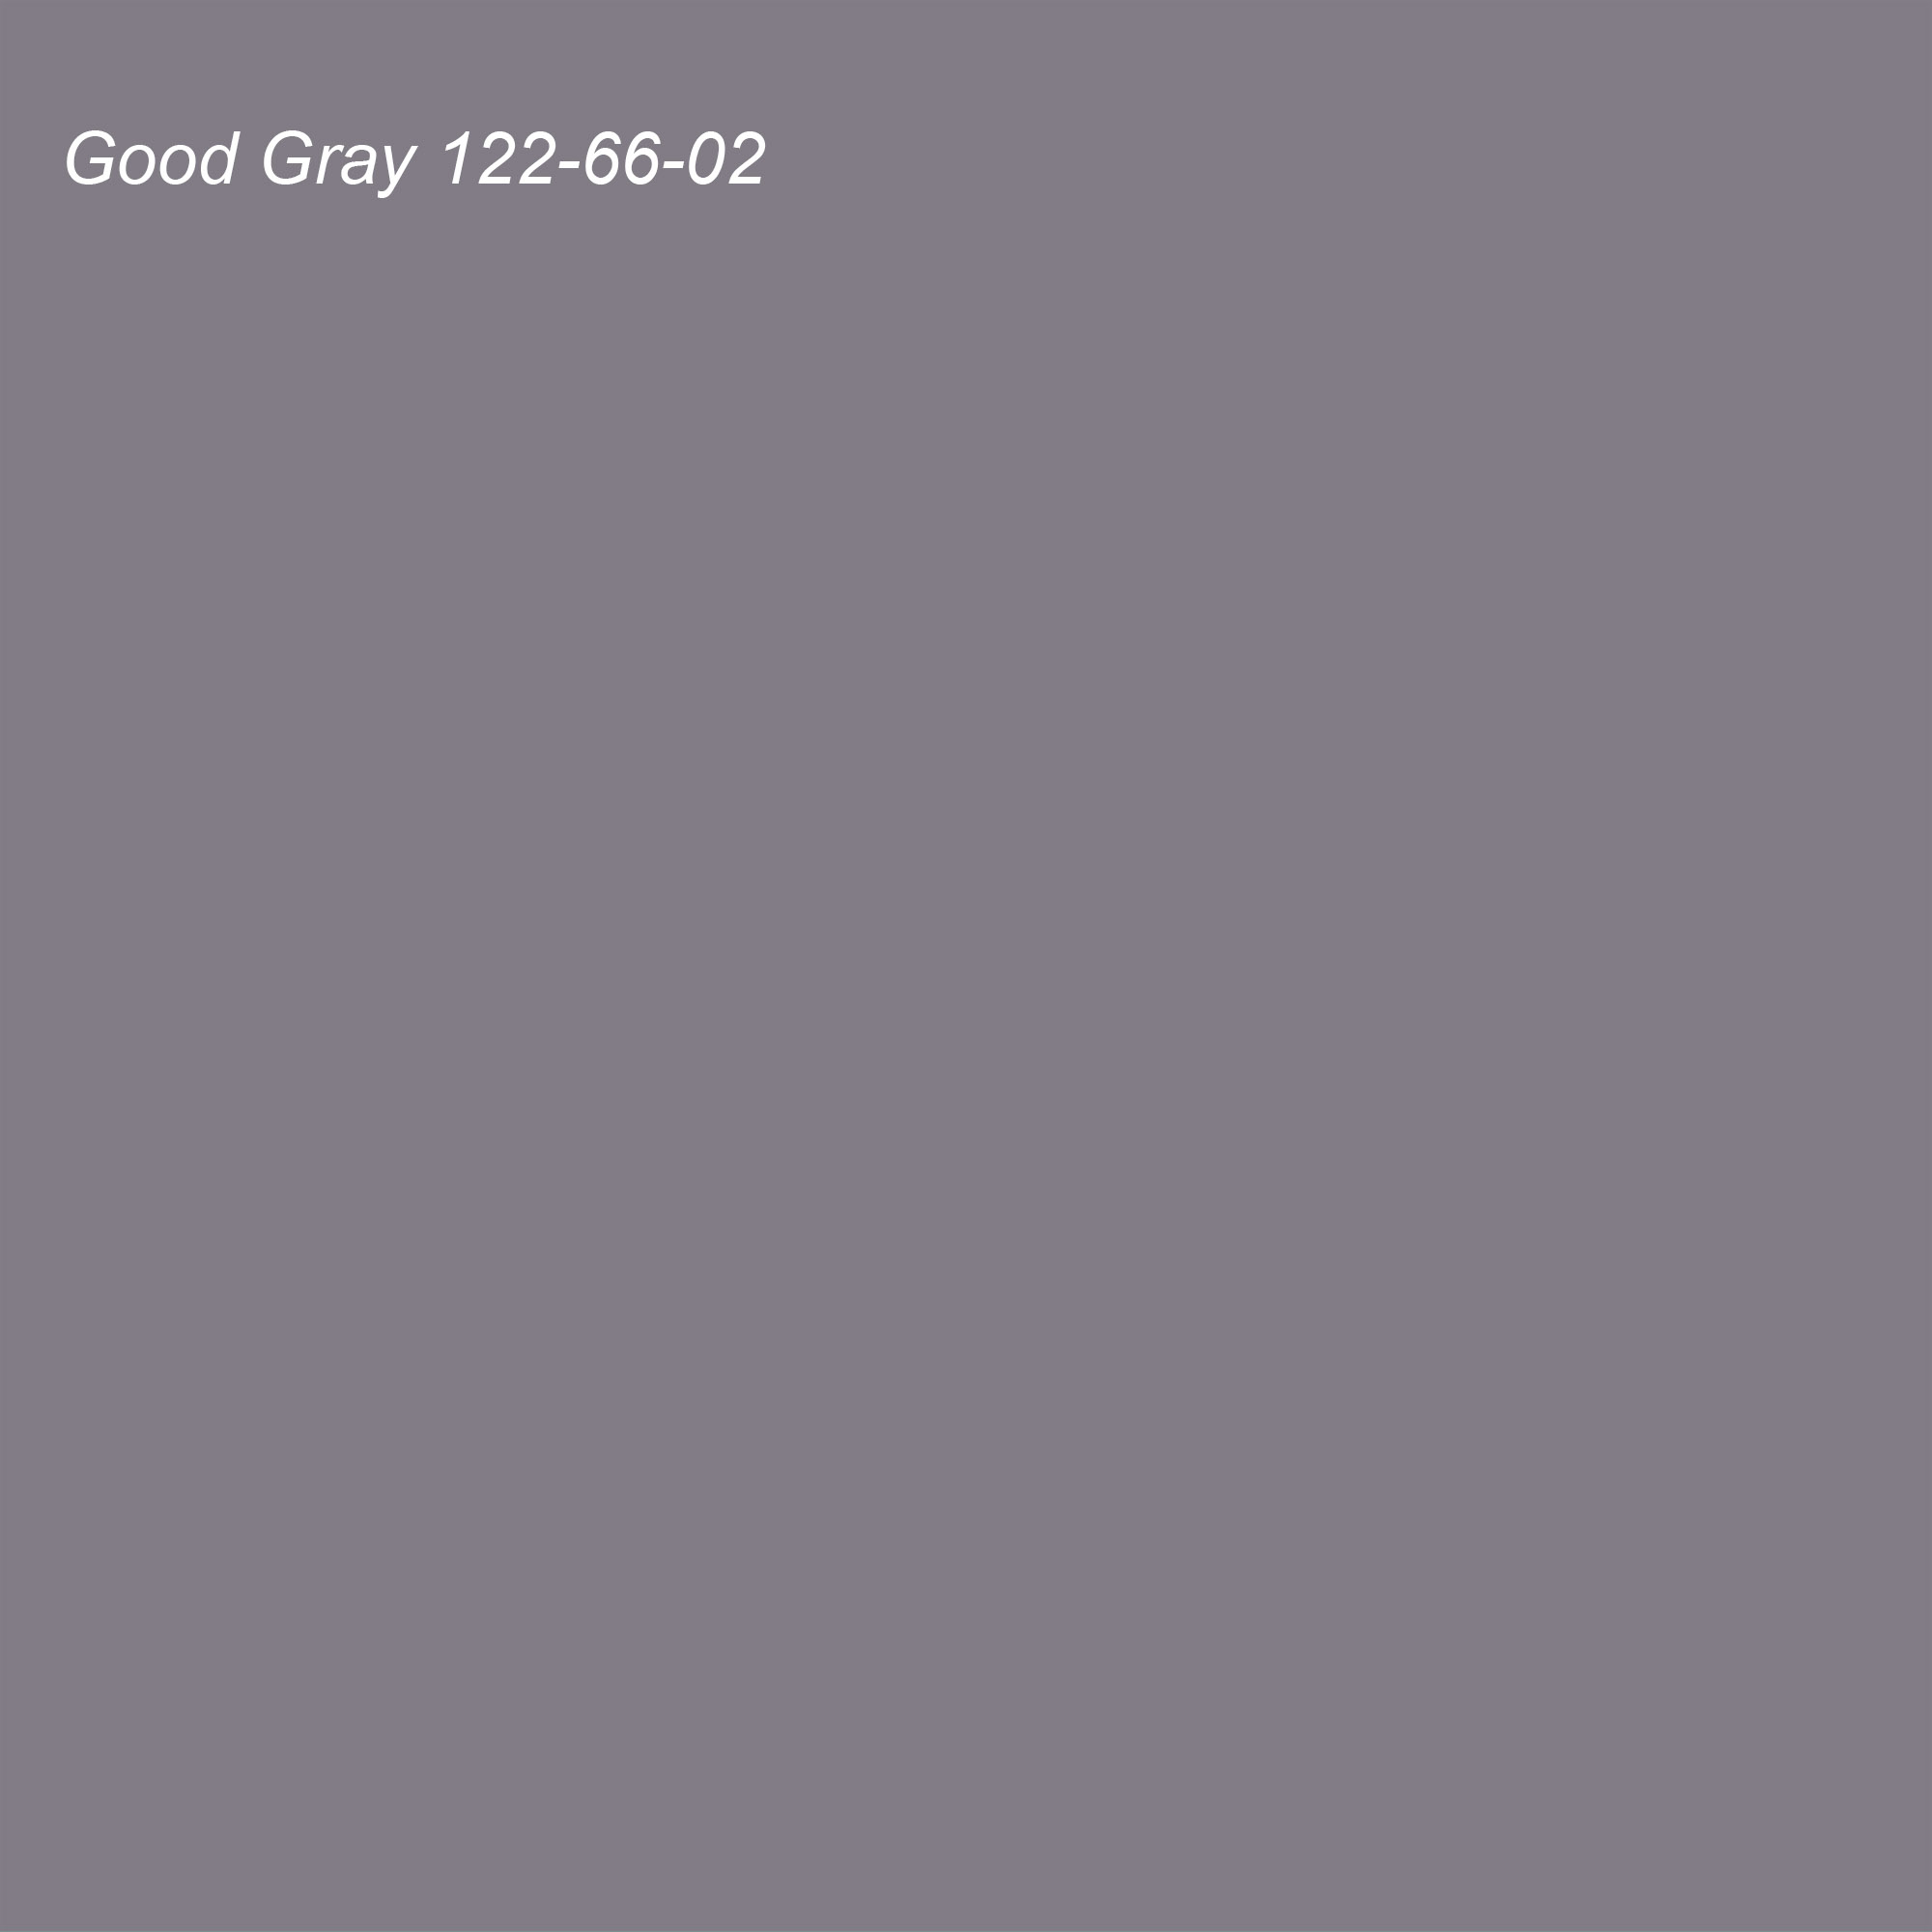 Coloro 2021 Color of the Year Suggested Accent Shade Good Gray (grey) 122-66-02